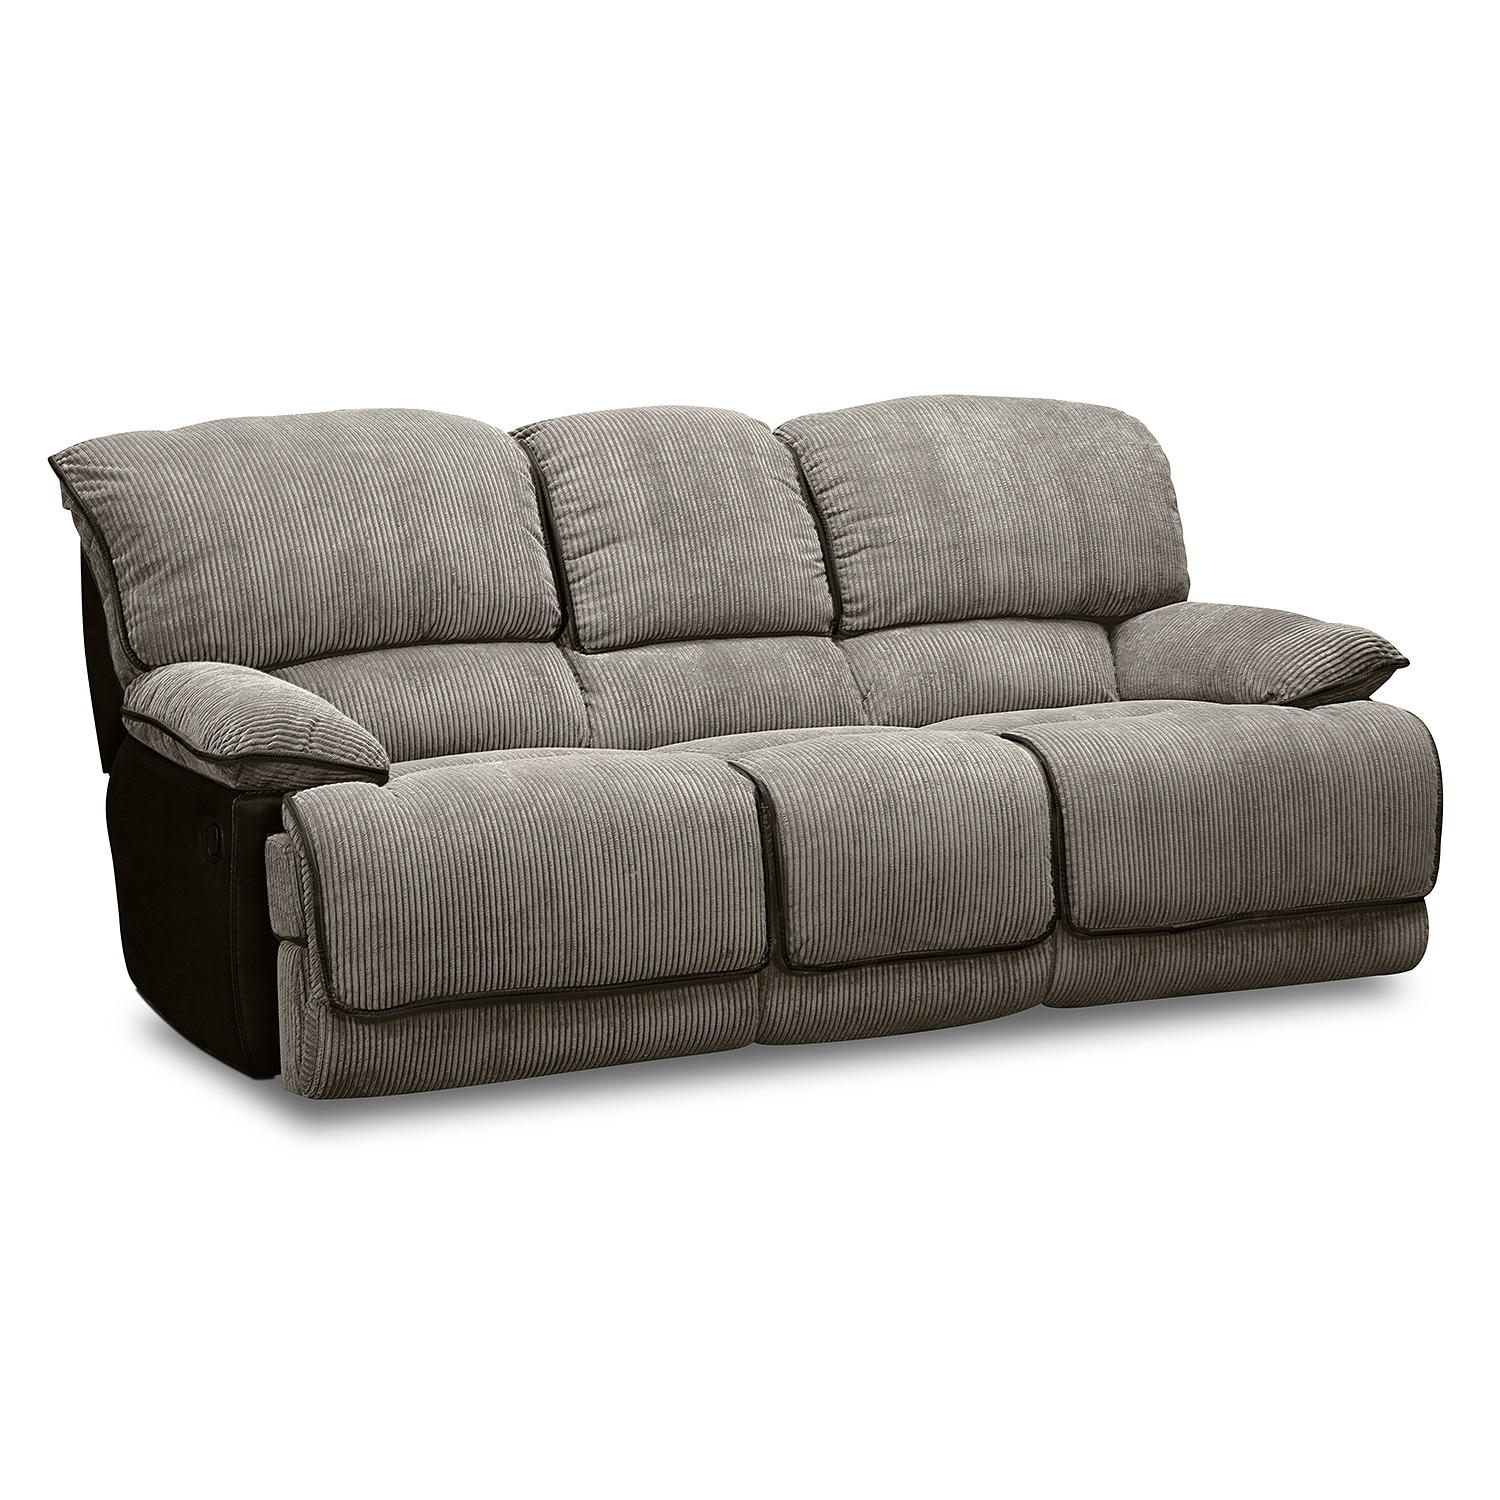 Laguna ii dual reclining sofa value city furniture Sofa loveseat